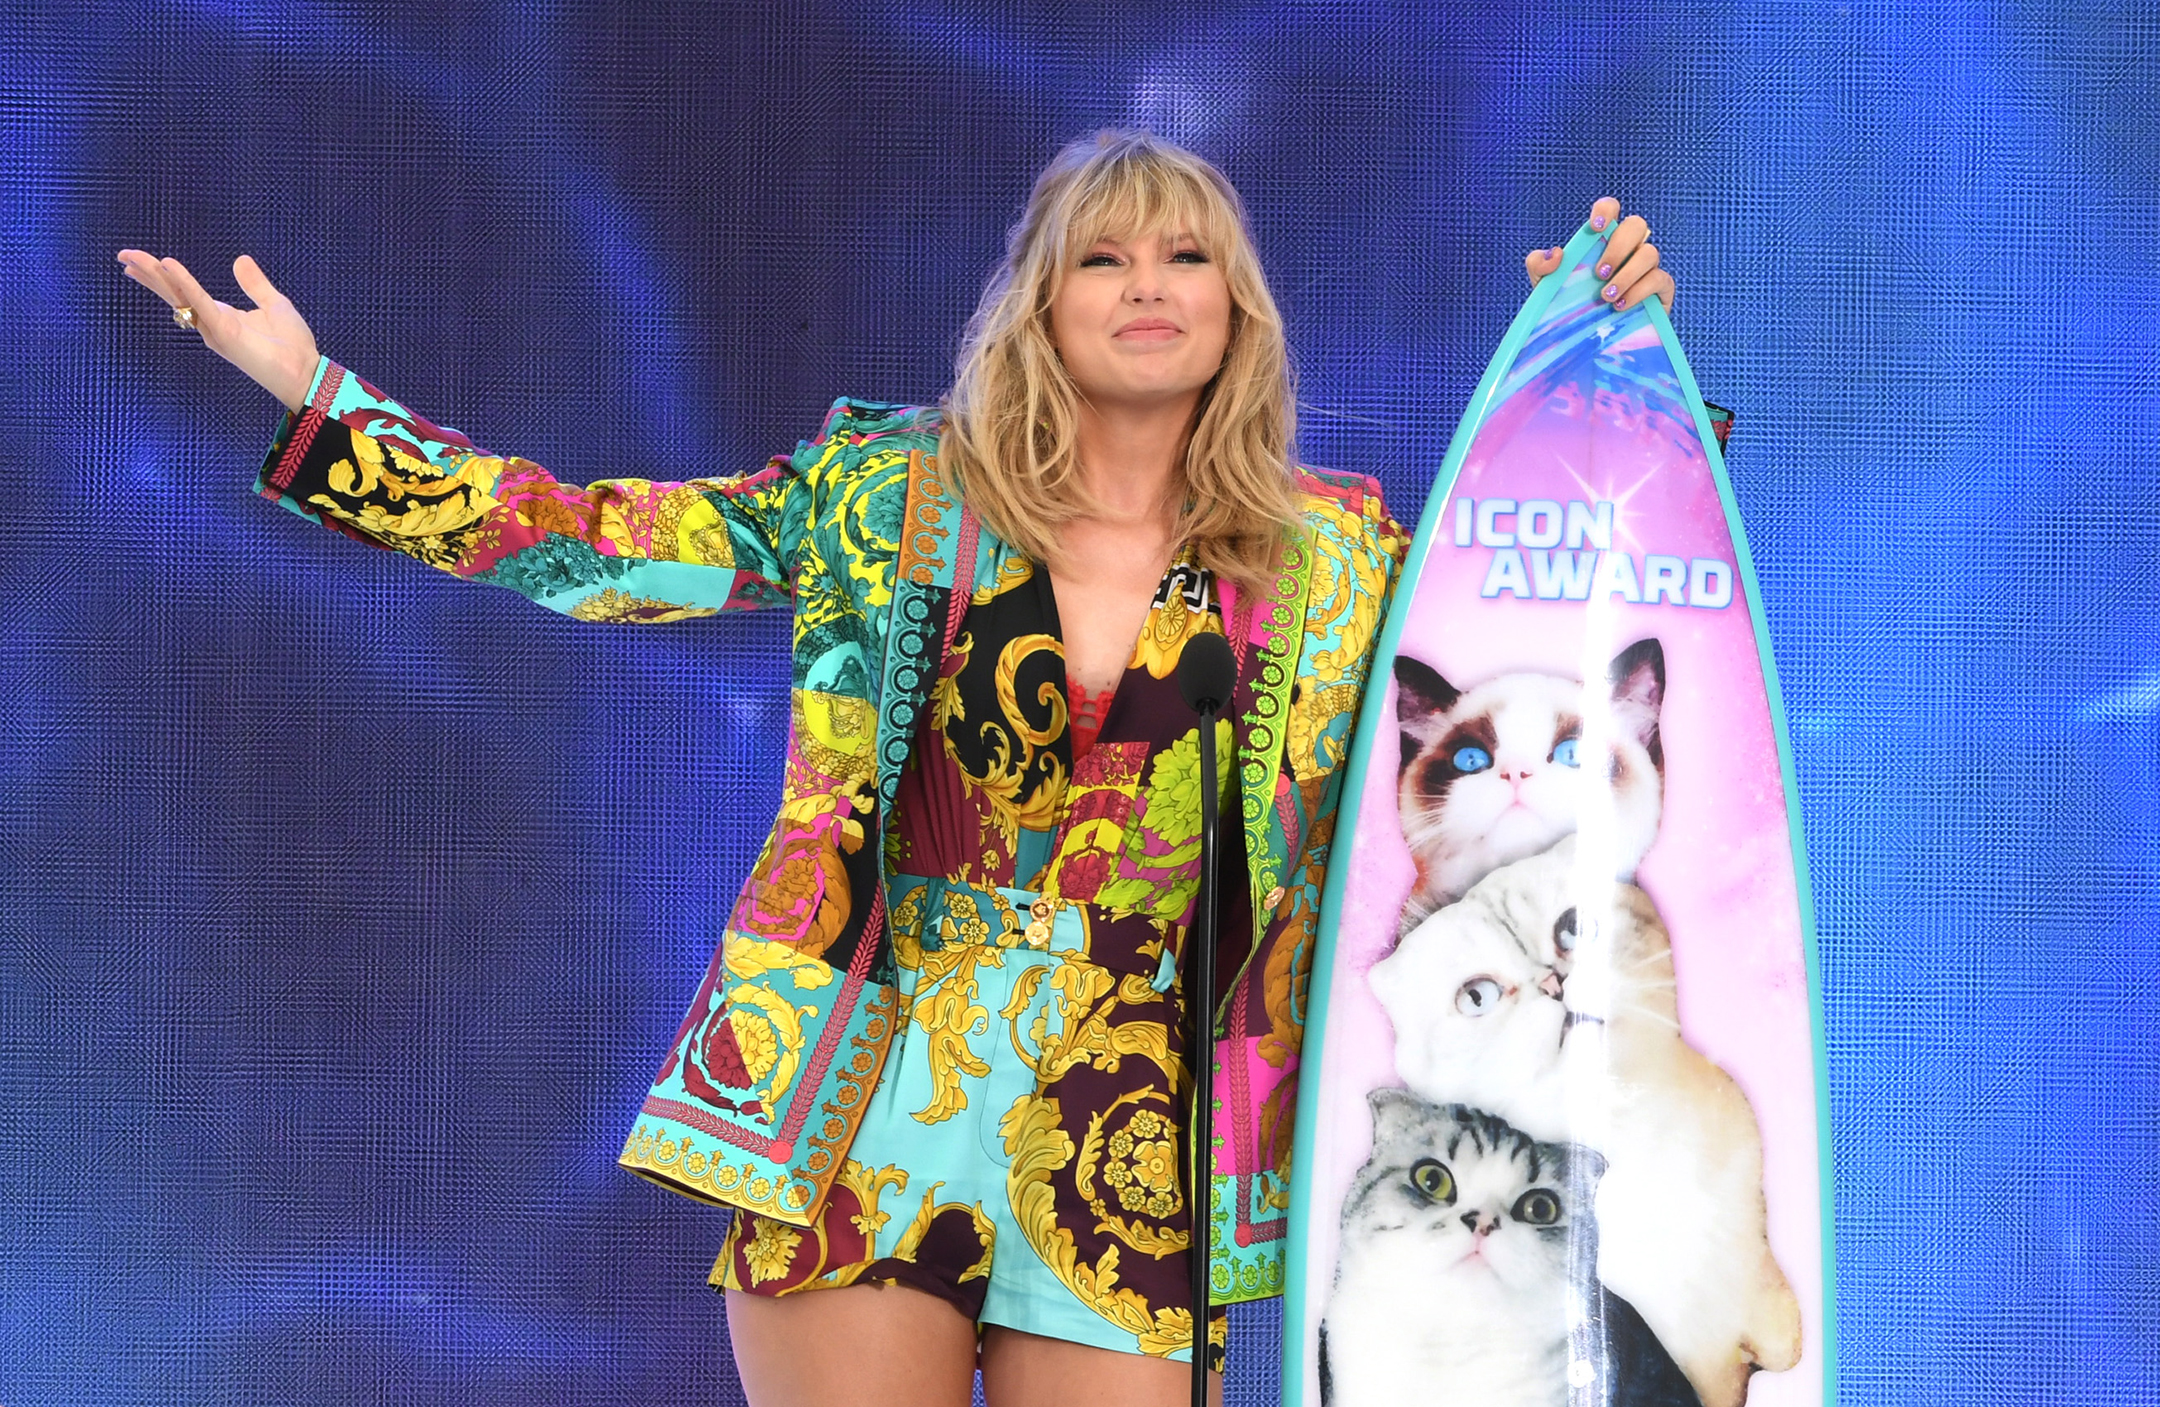 Taylor Swift, wearing a colorful broad-shouldered jacket, smiles as she poses with a surfboard that serves as her trophy for winning the icon award